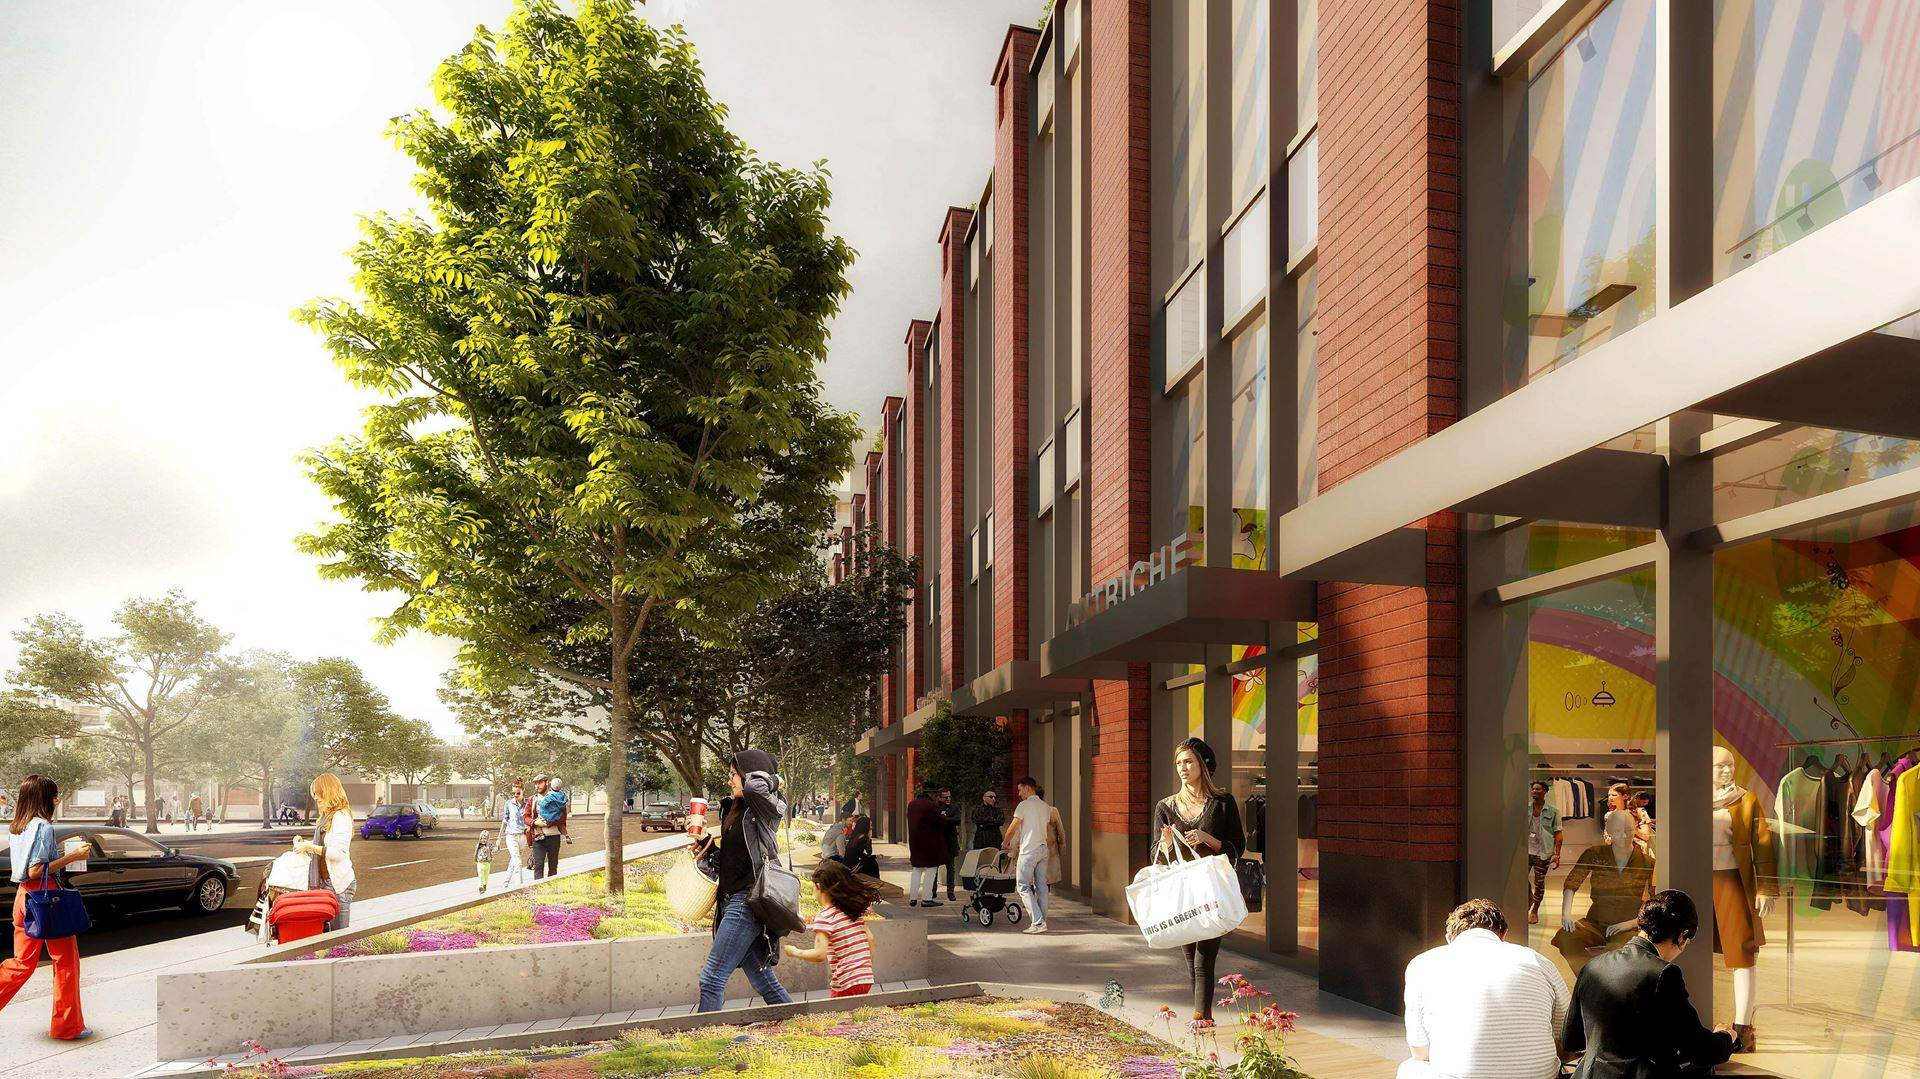 2020_06_10_03_01_08_lawrenceavenue_firstcapital_rendering_exterior4